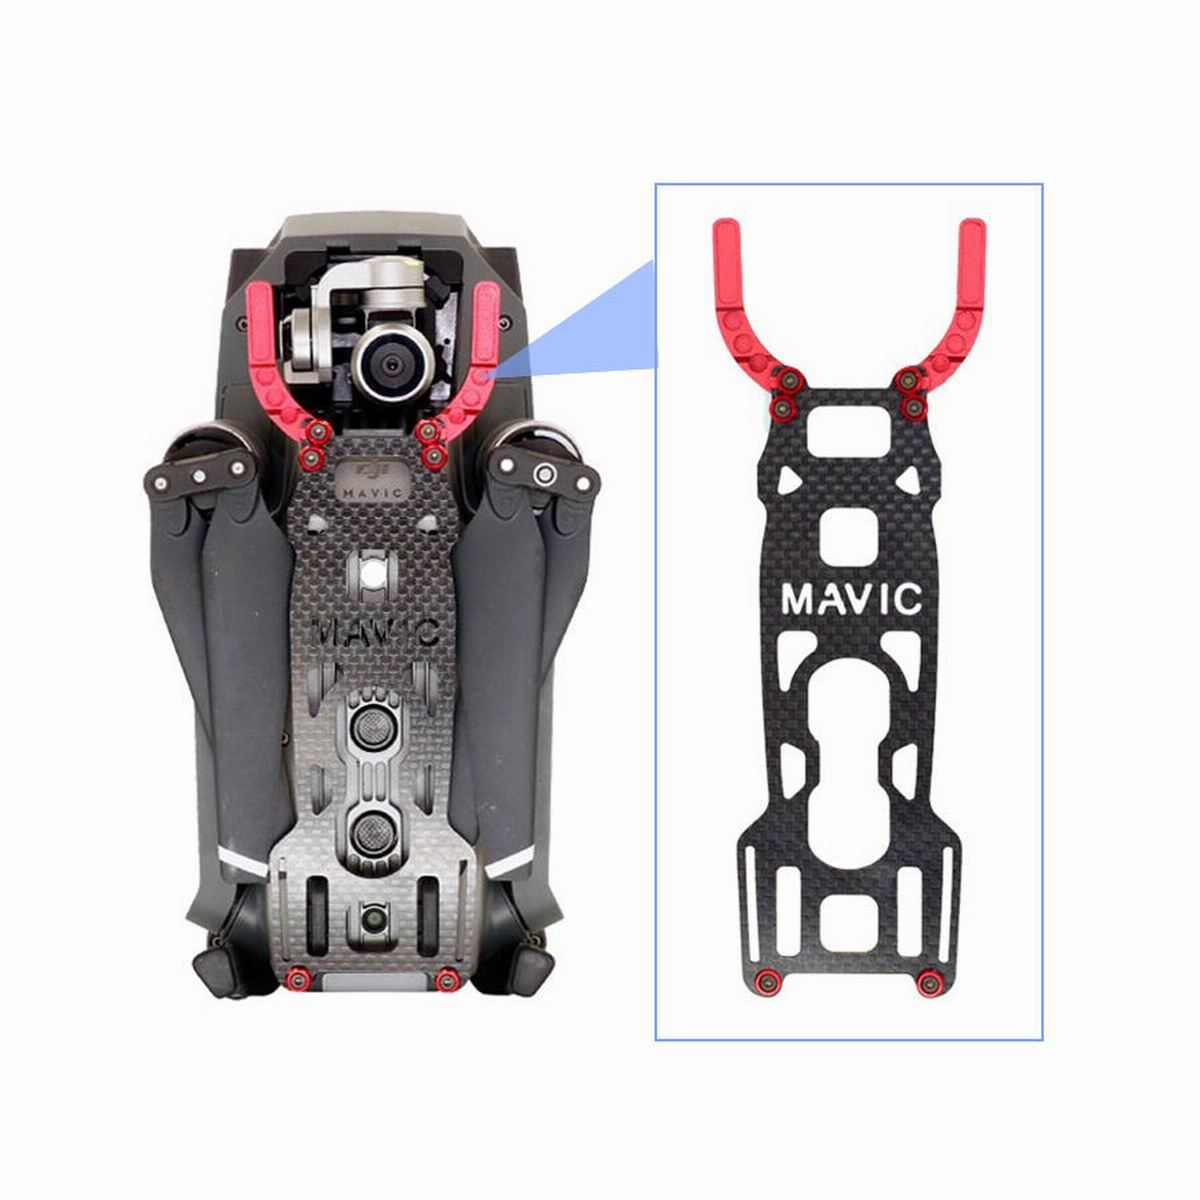 MAVIC PRO Gimbal Guard 3K Carbon Fiber Protective Board Gimbal Protector for DJI MAVIC PRO Drone aliexpress com online shopping for electronics, fashion, home  at reclaimingppi.co